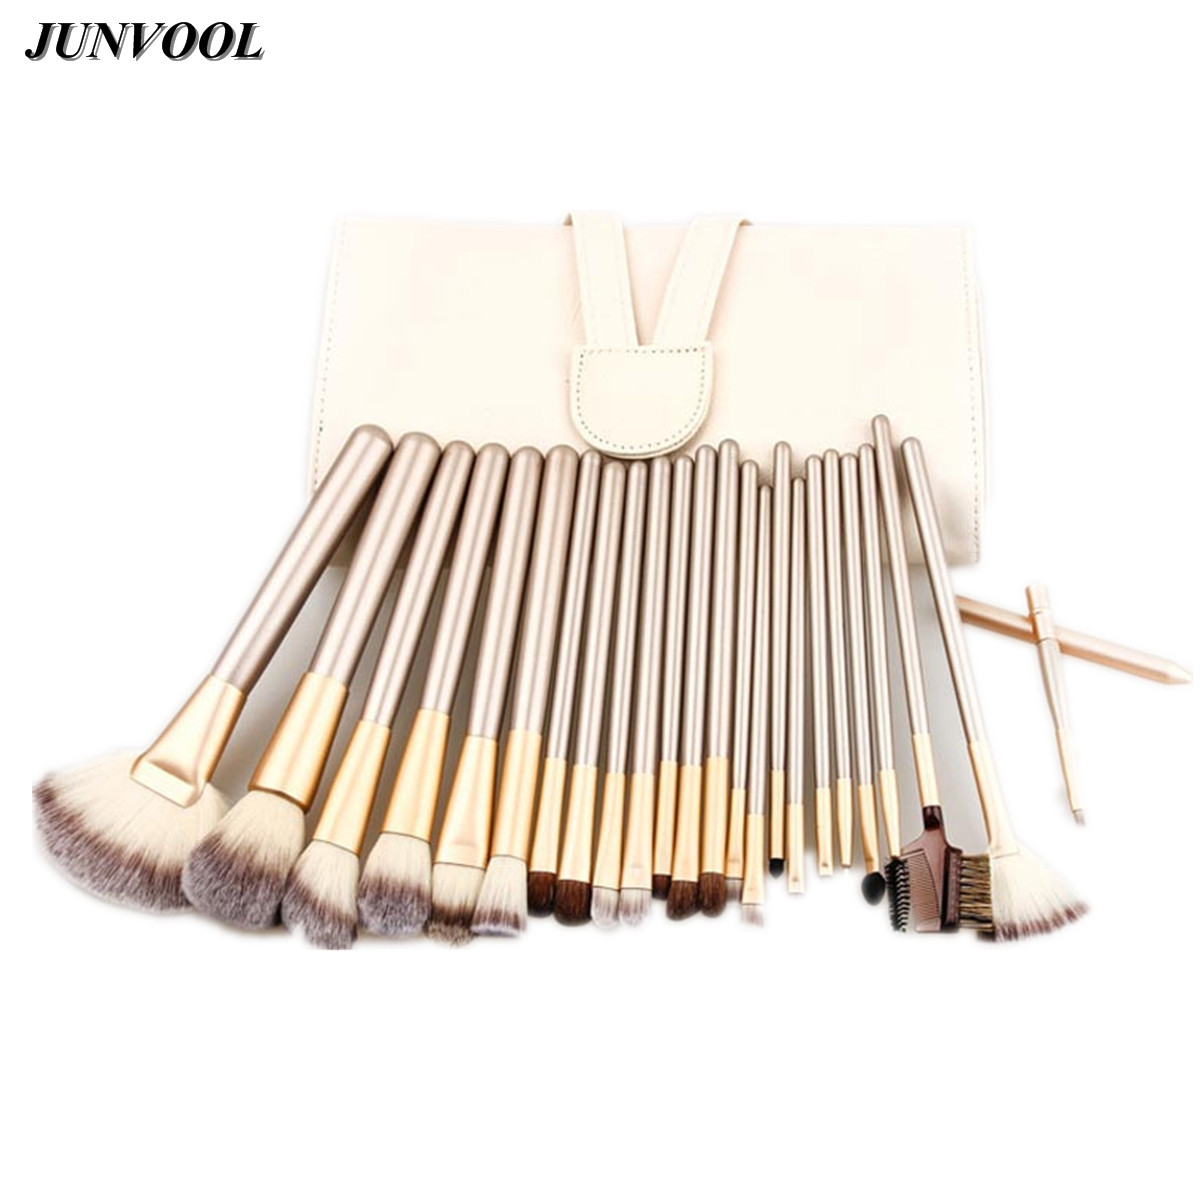 Gold 24pcs Brown Makeup Brushes Professional Powder Foundation Brush Set Cosmetic Make Up Tool Blush Brush with Bag High Quality professional 32pcs makeup brushes cosmetic make up powder foundation brush set cosmetics tools with leather bag beauty tool 2016